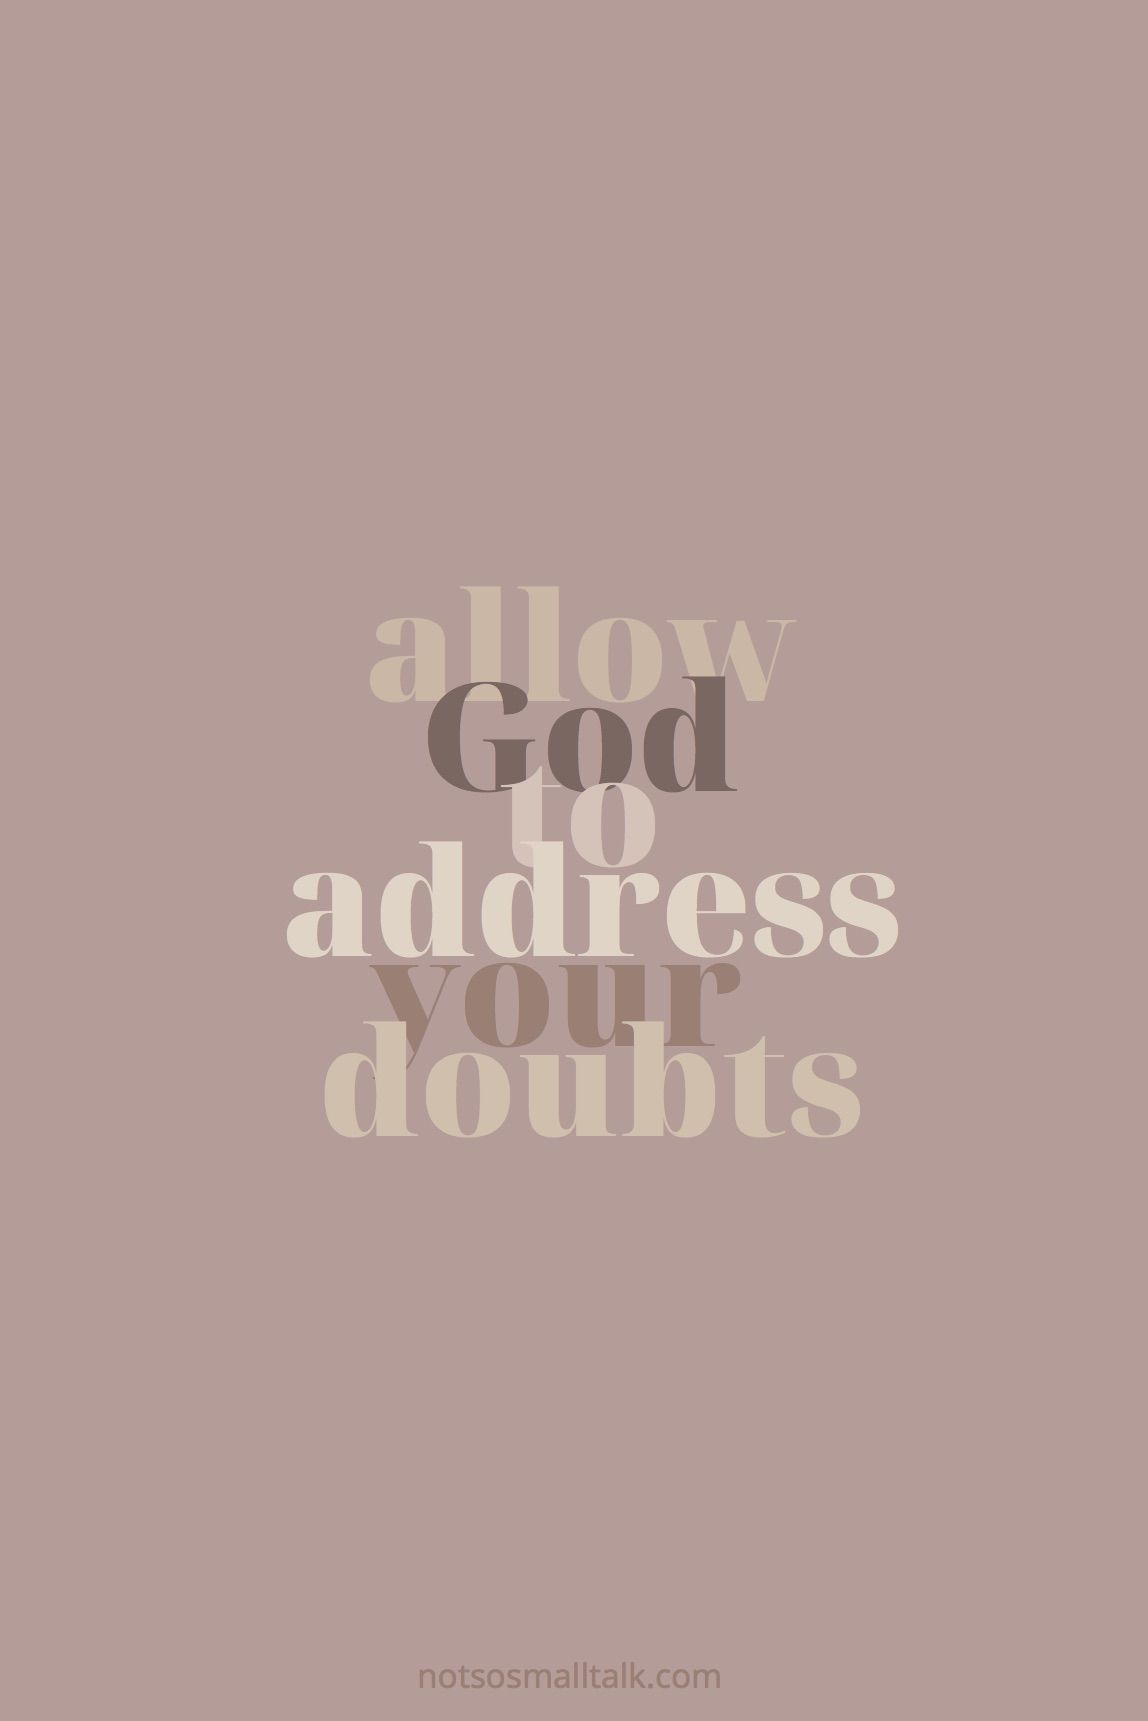 Bring Your Doubts to God